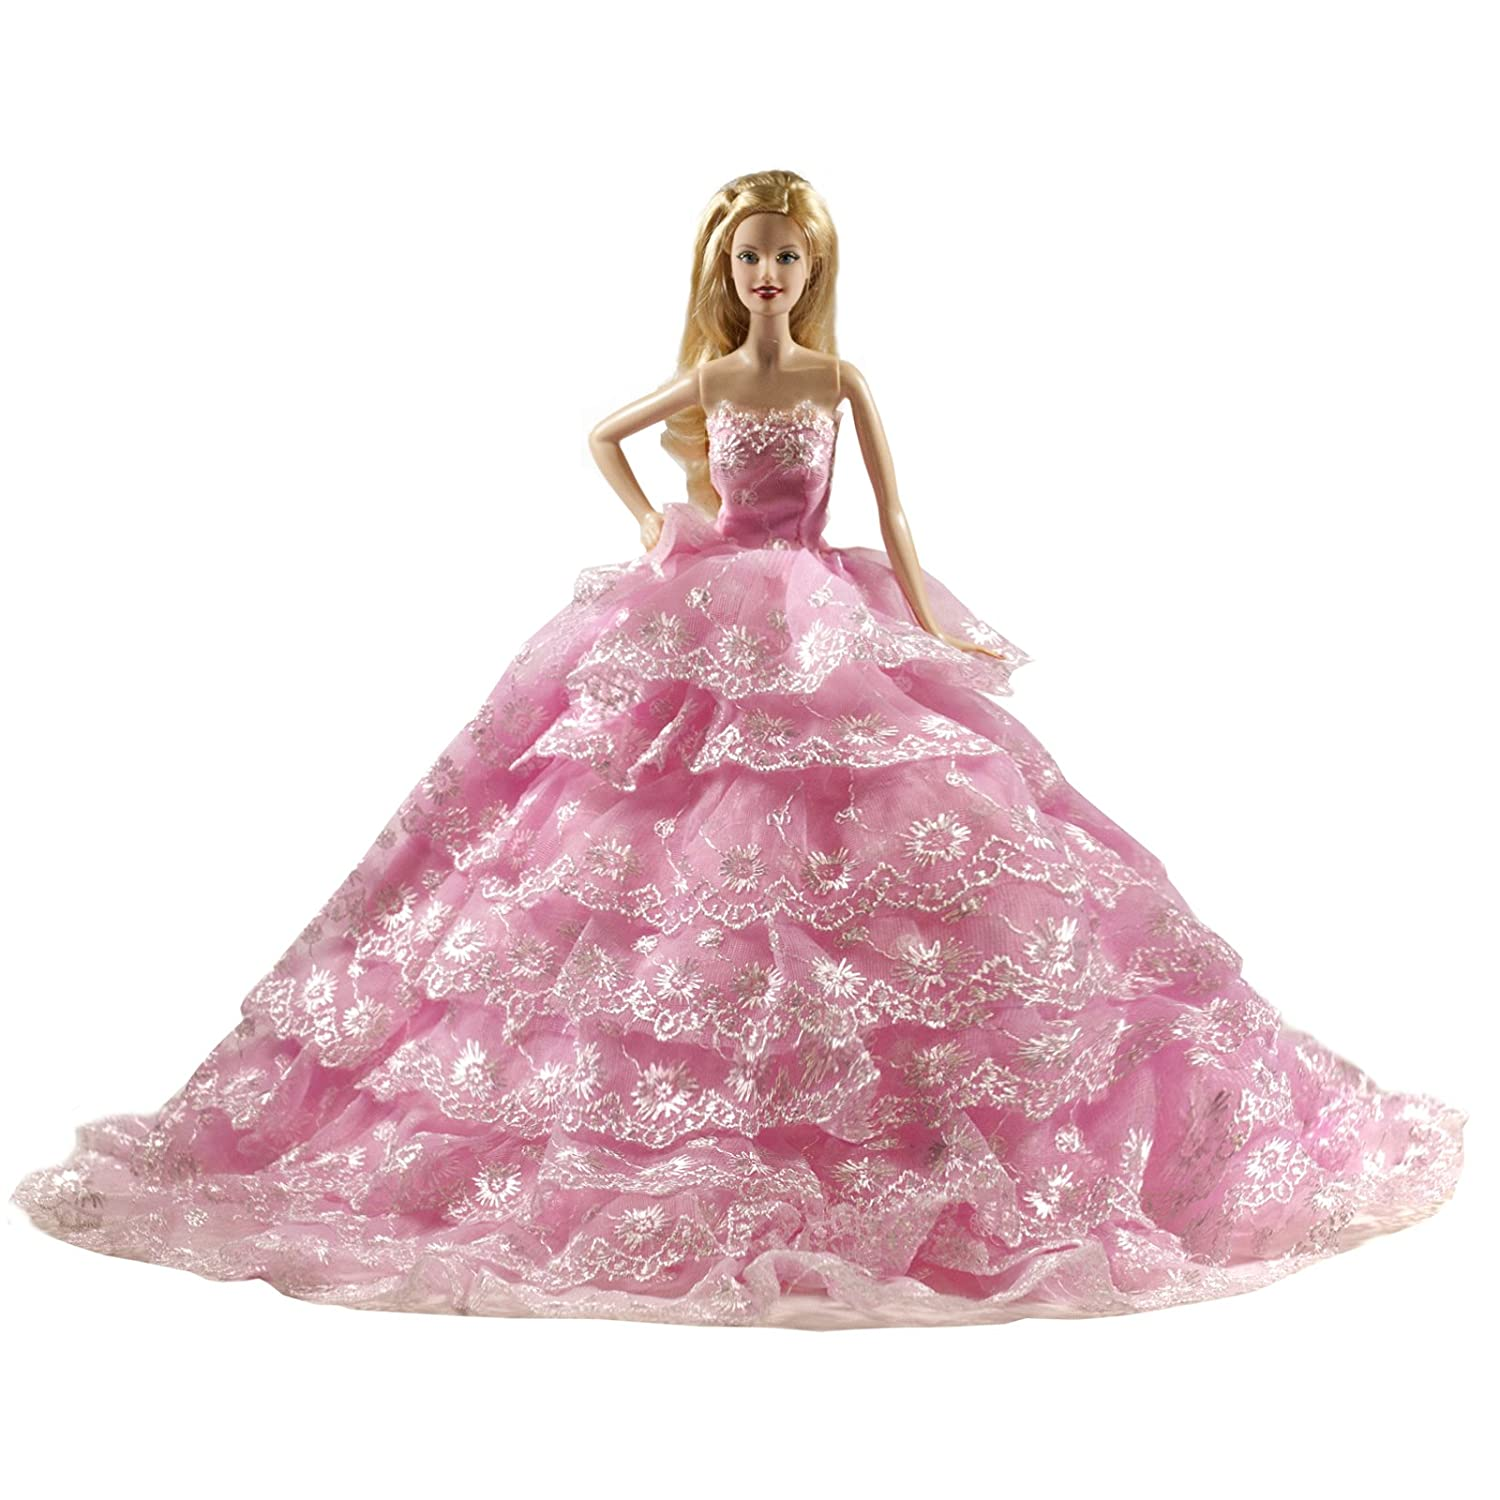 Peregrine Romantic Ball Gown Strapless Layers of Organza Pink Wedding Dress for 11.5 inches Dolls